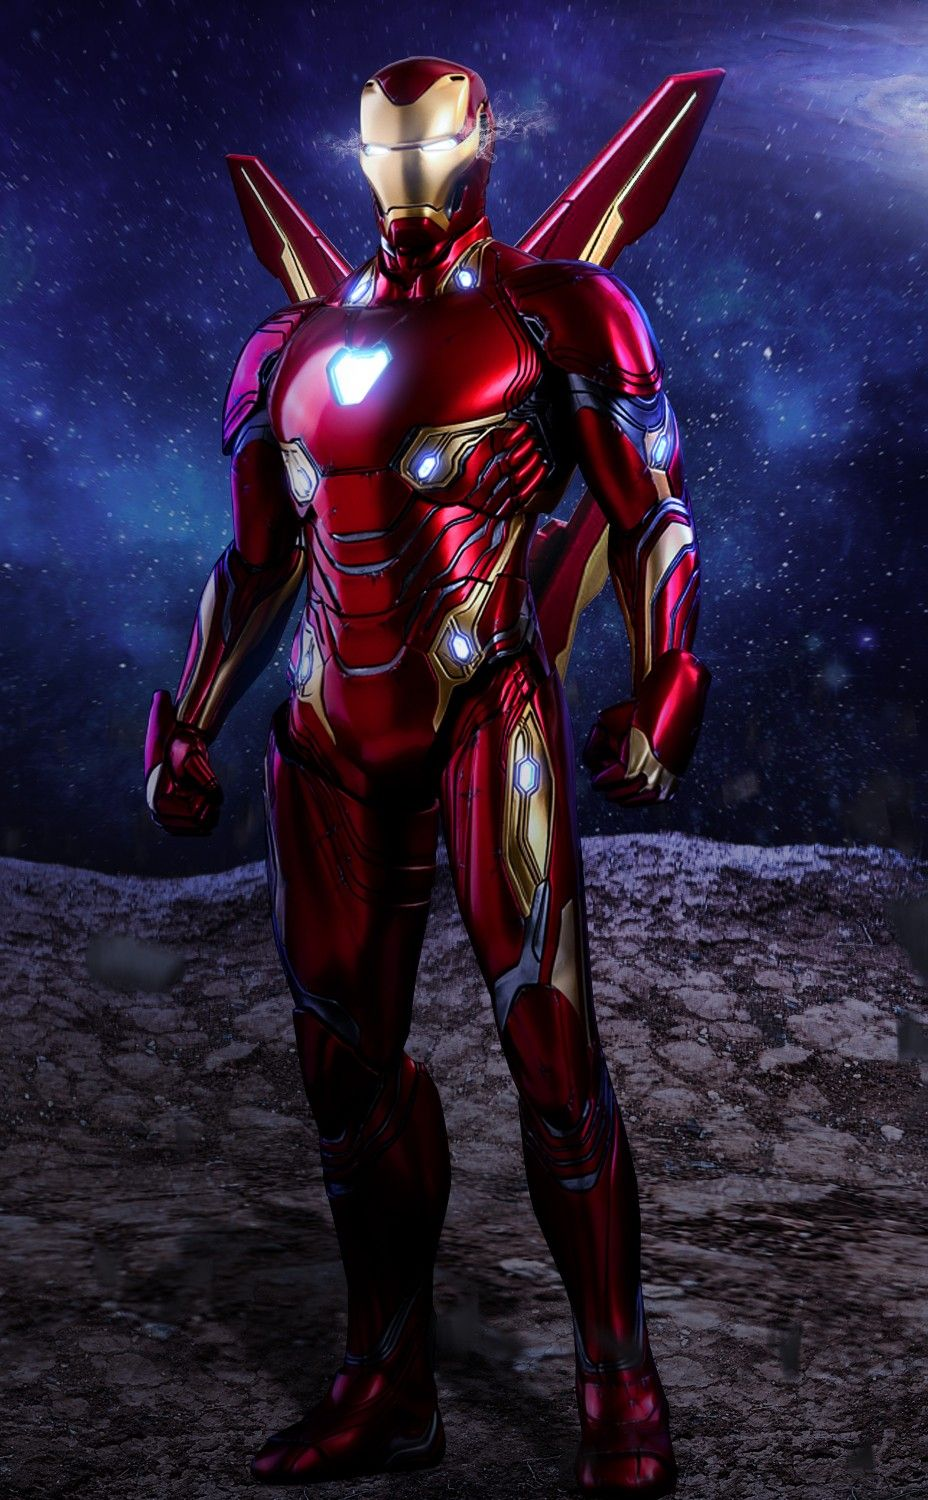 Pin By Iyan Sofyan On Super Heroes Pictures Iron Man Marvel Avengers